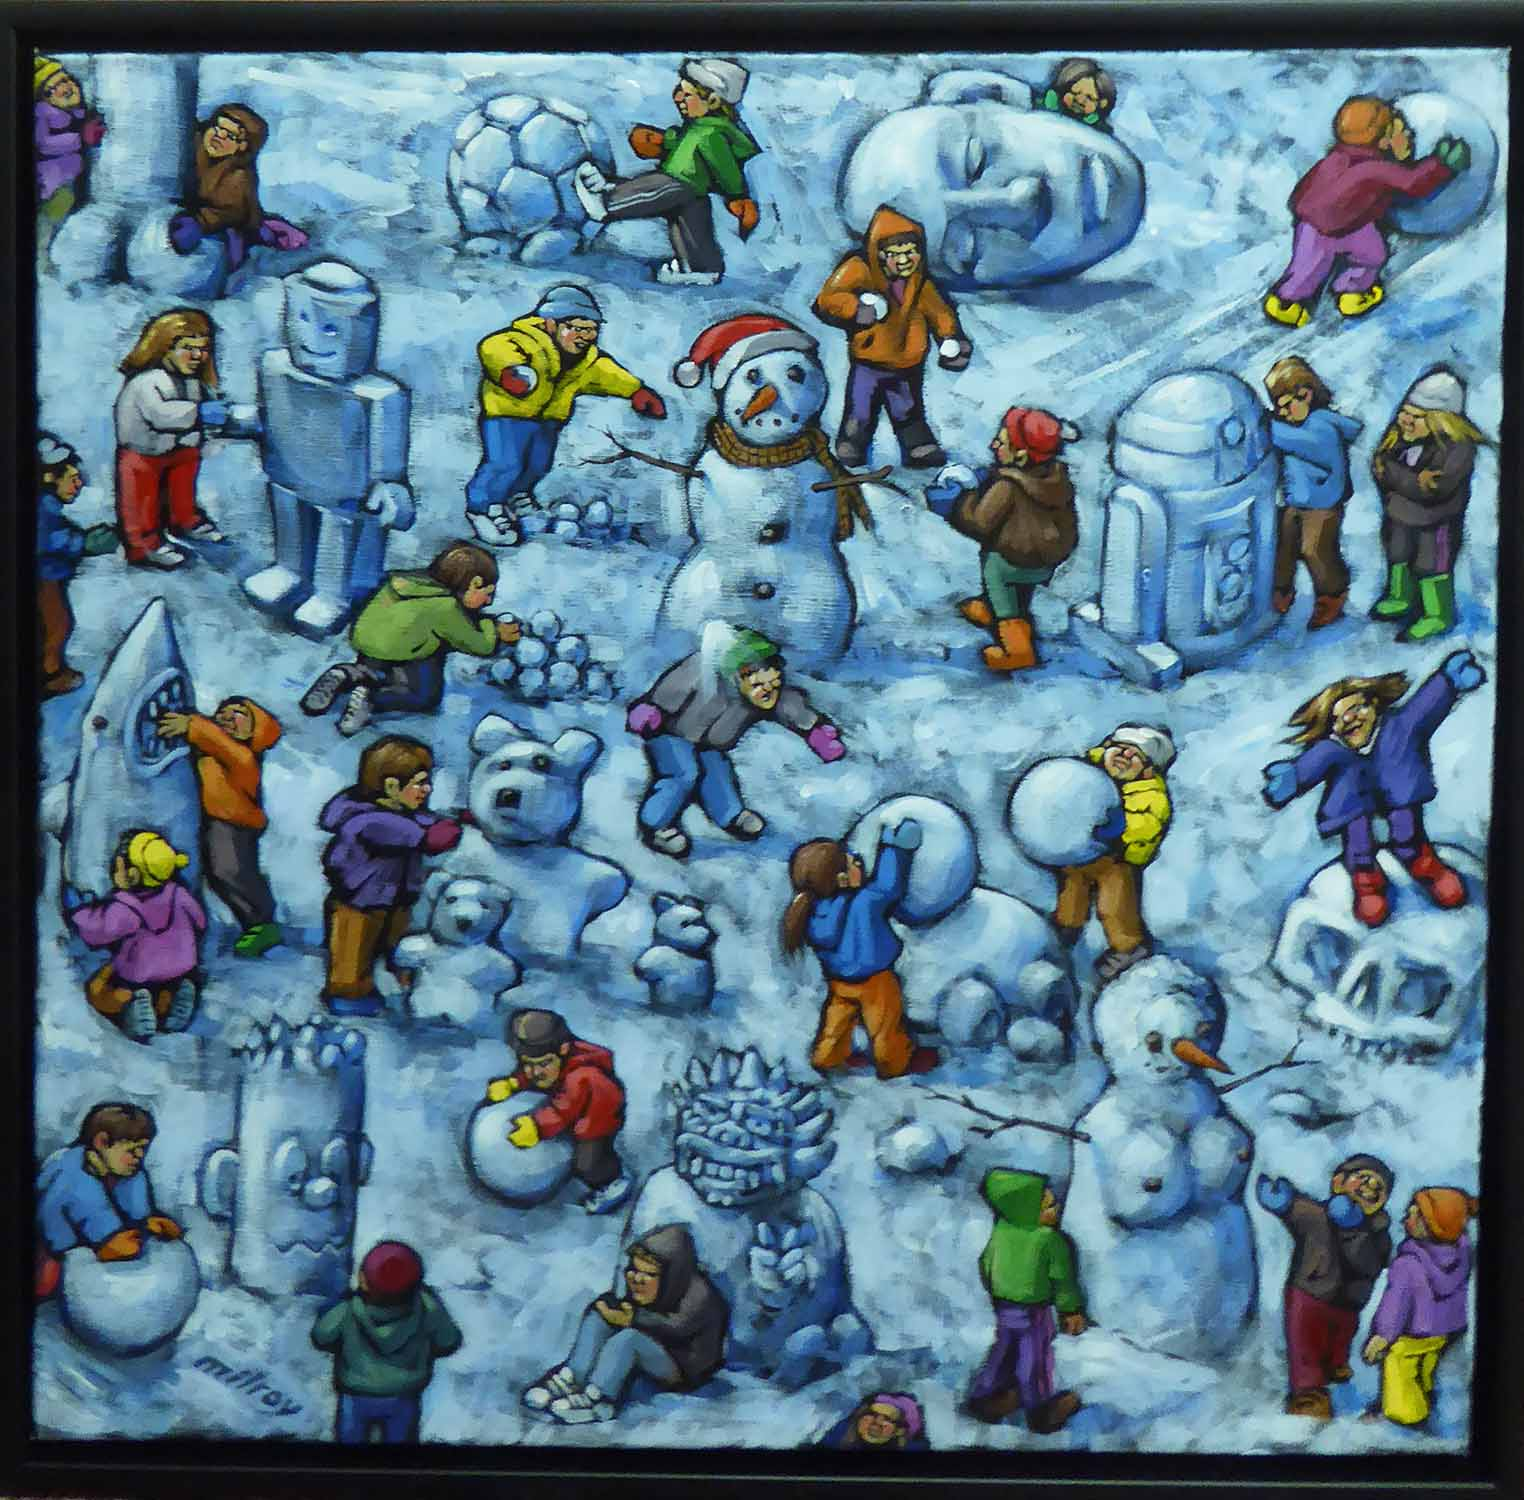 Lot 32 - JAMES MILROY (Contemporary British) 'Building Snowmen', acrylic on canvas, signed lower left,